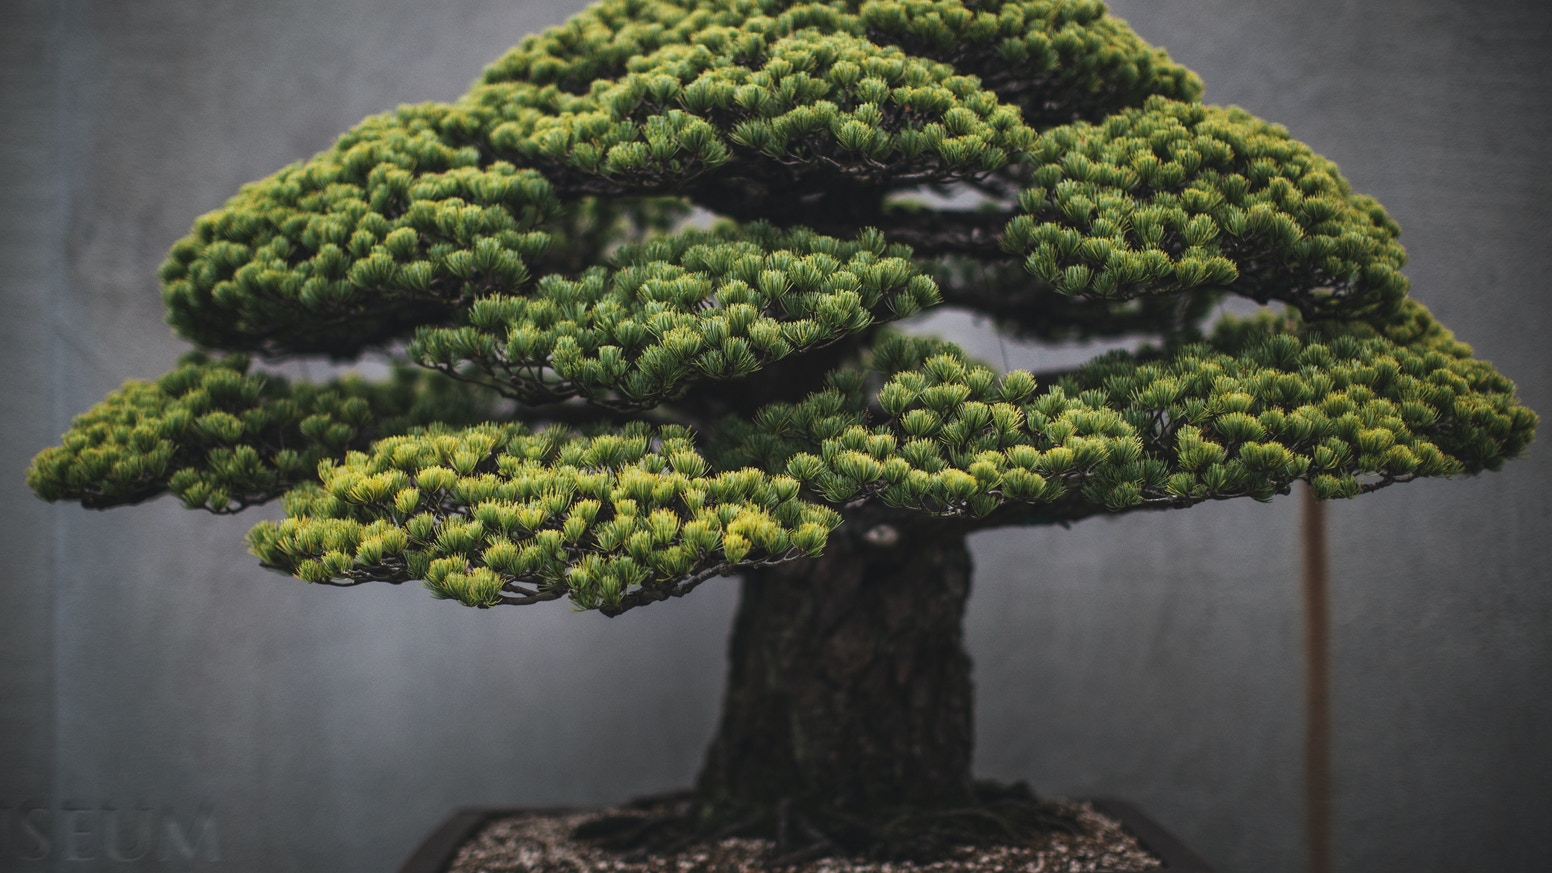 A fine art photography book taking a new look at the art of bonsai.